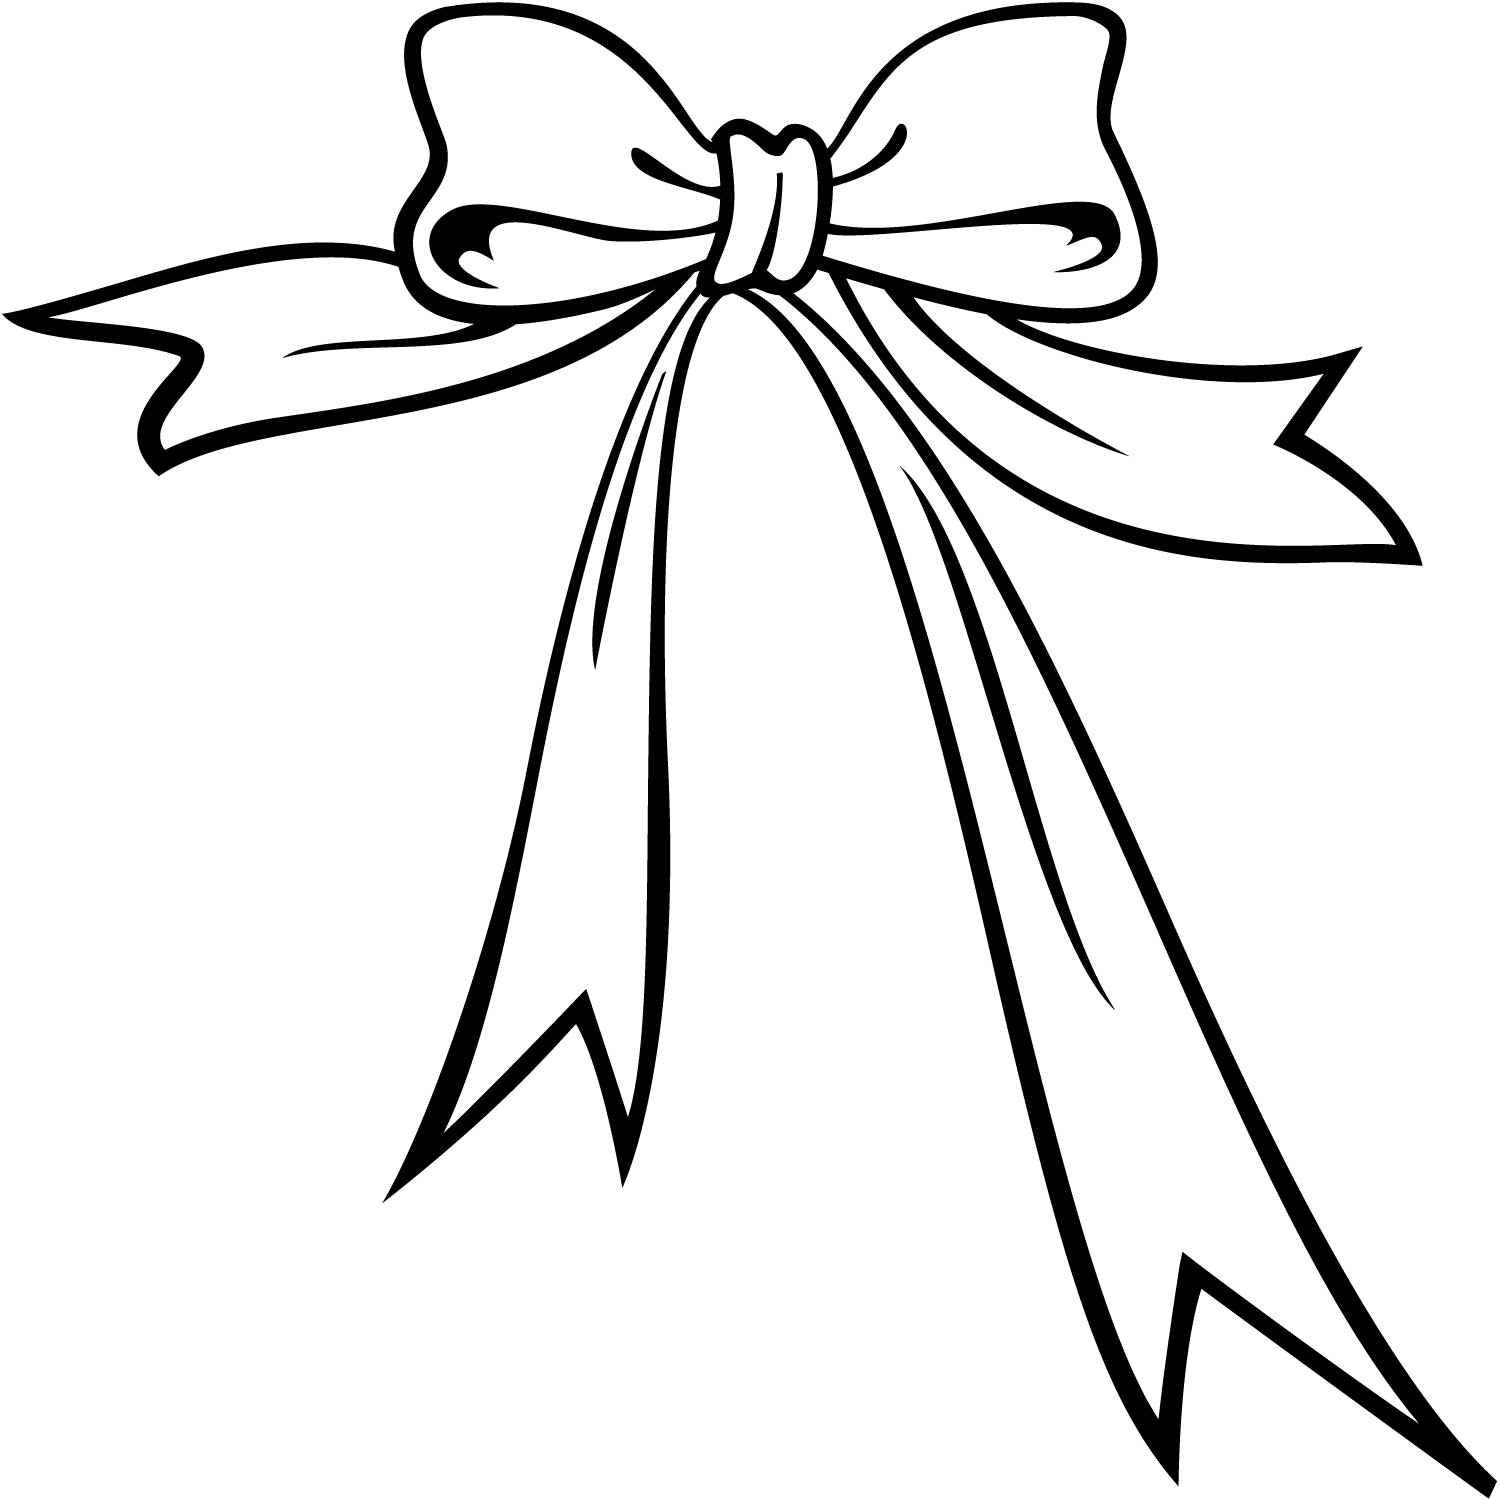 Ribbon clipart #8, Download drawings